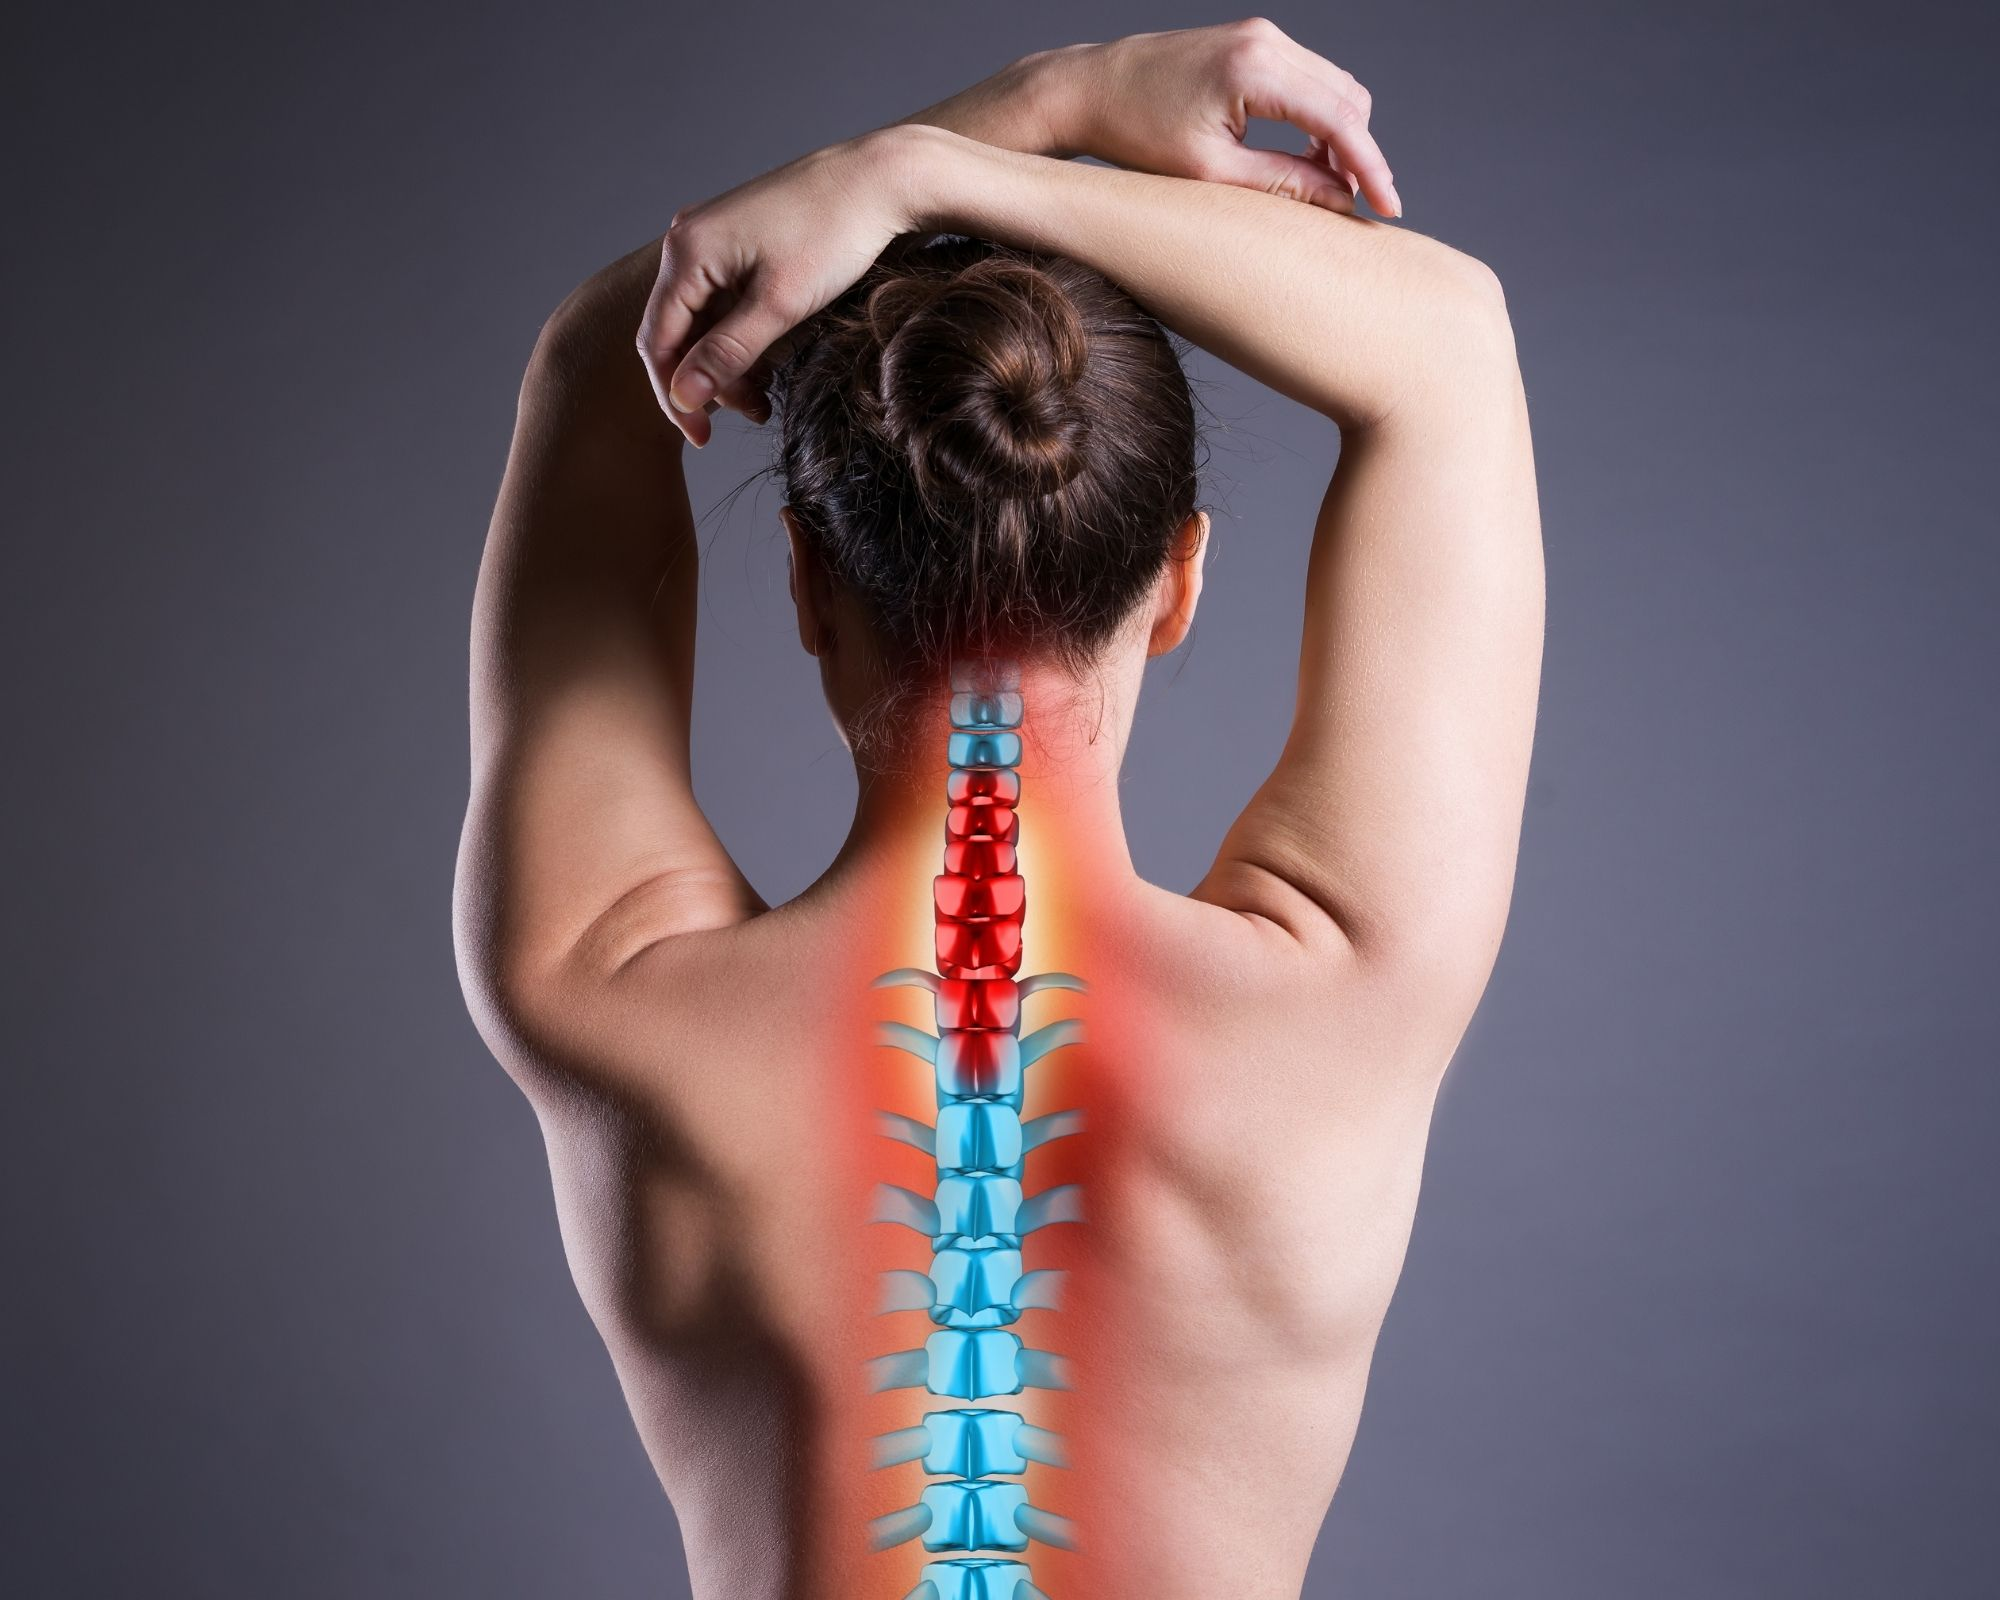 spine - relating to hyaluronic acid